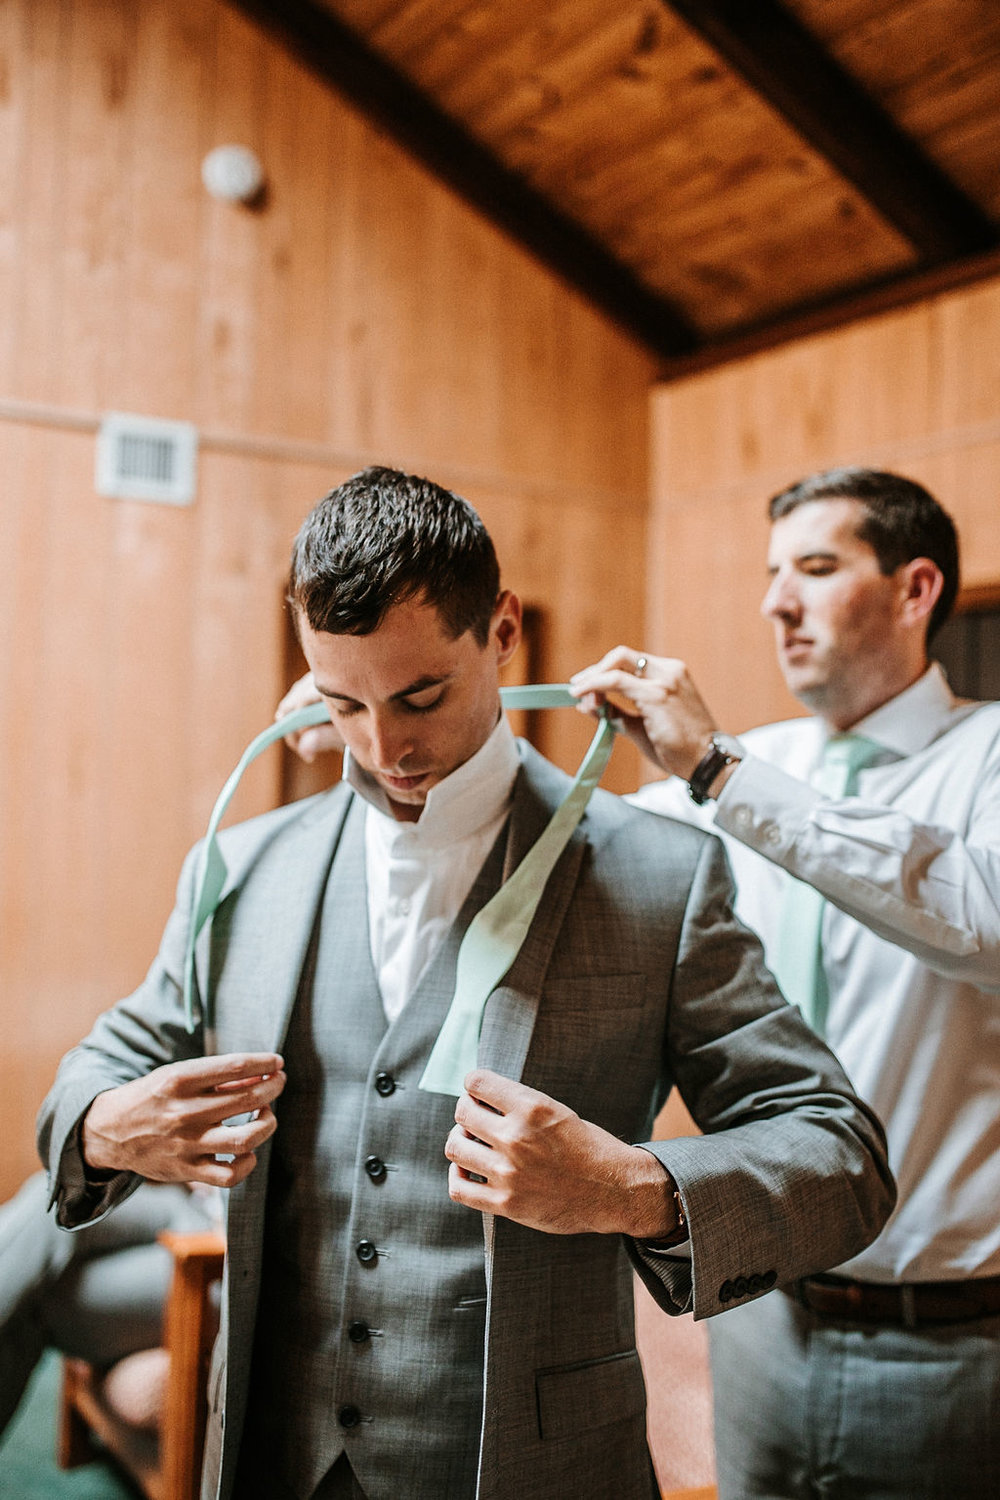 Groom Getting Ready at The Woodlands at Algonkian